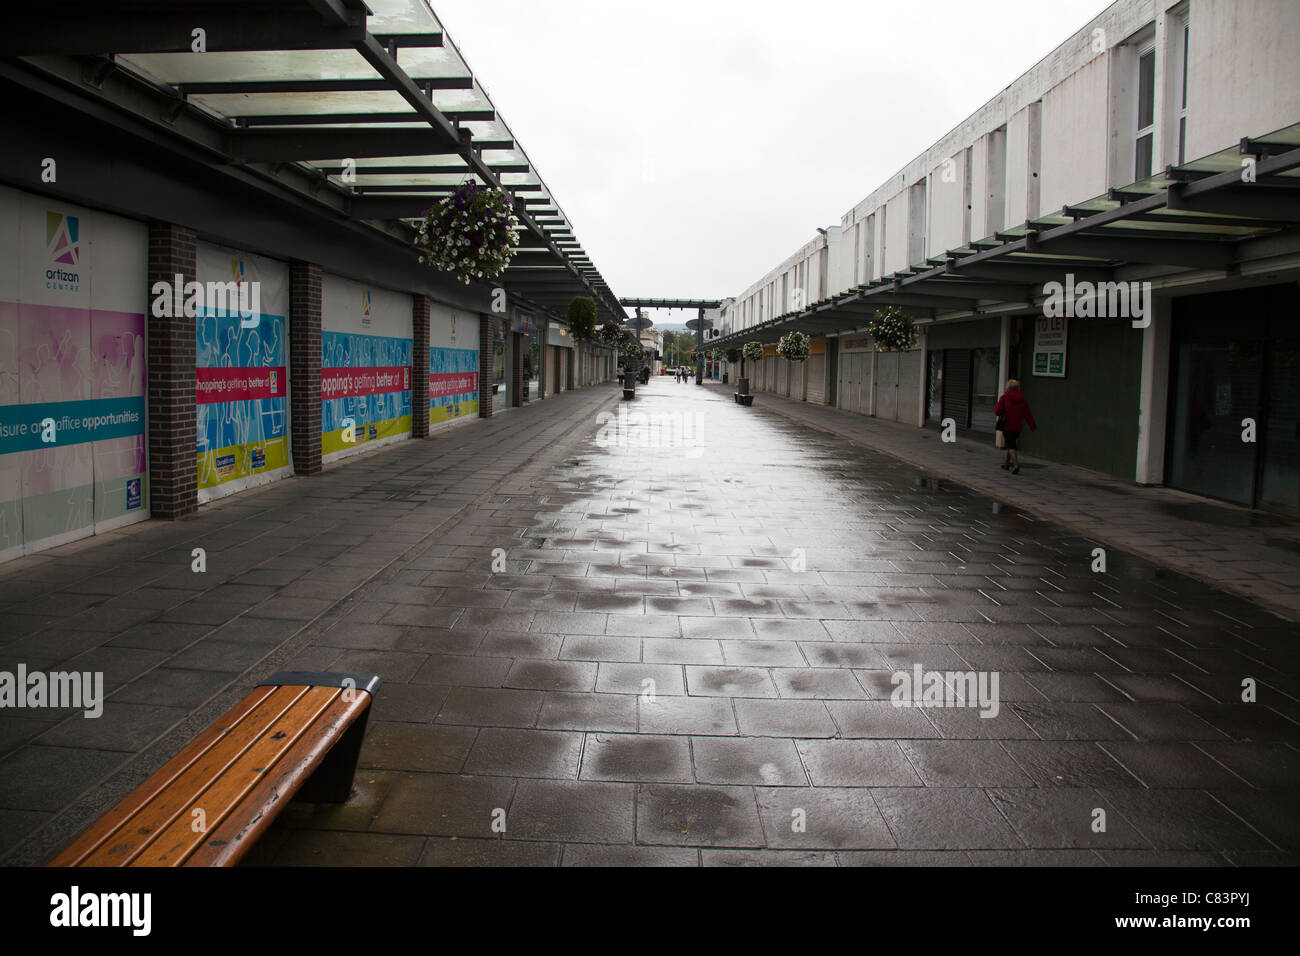 Dumbarton sparse shopping centre most shops boarded up in mid week sad depressing place - Stock Image